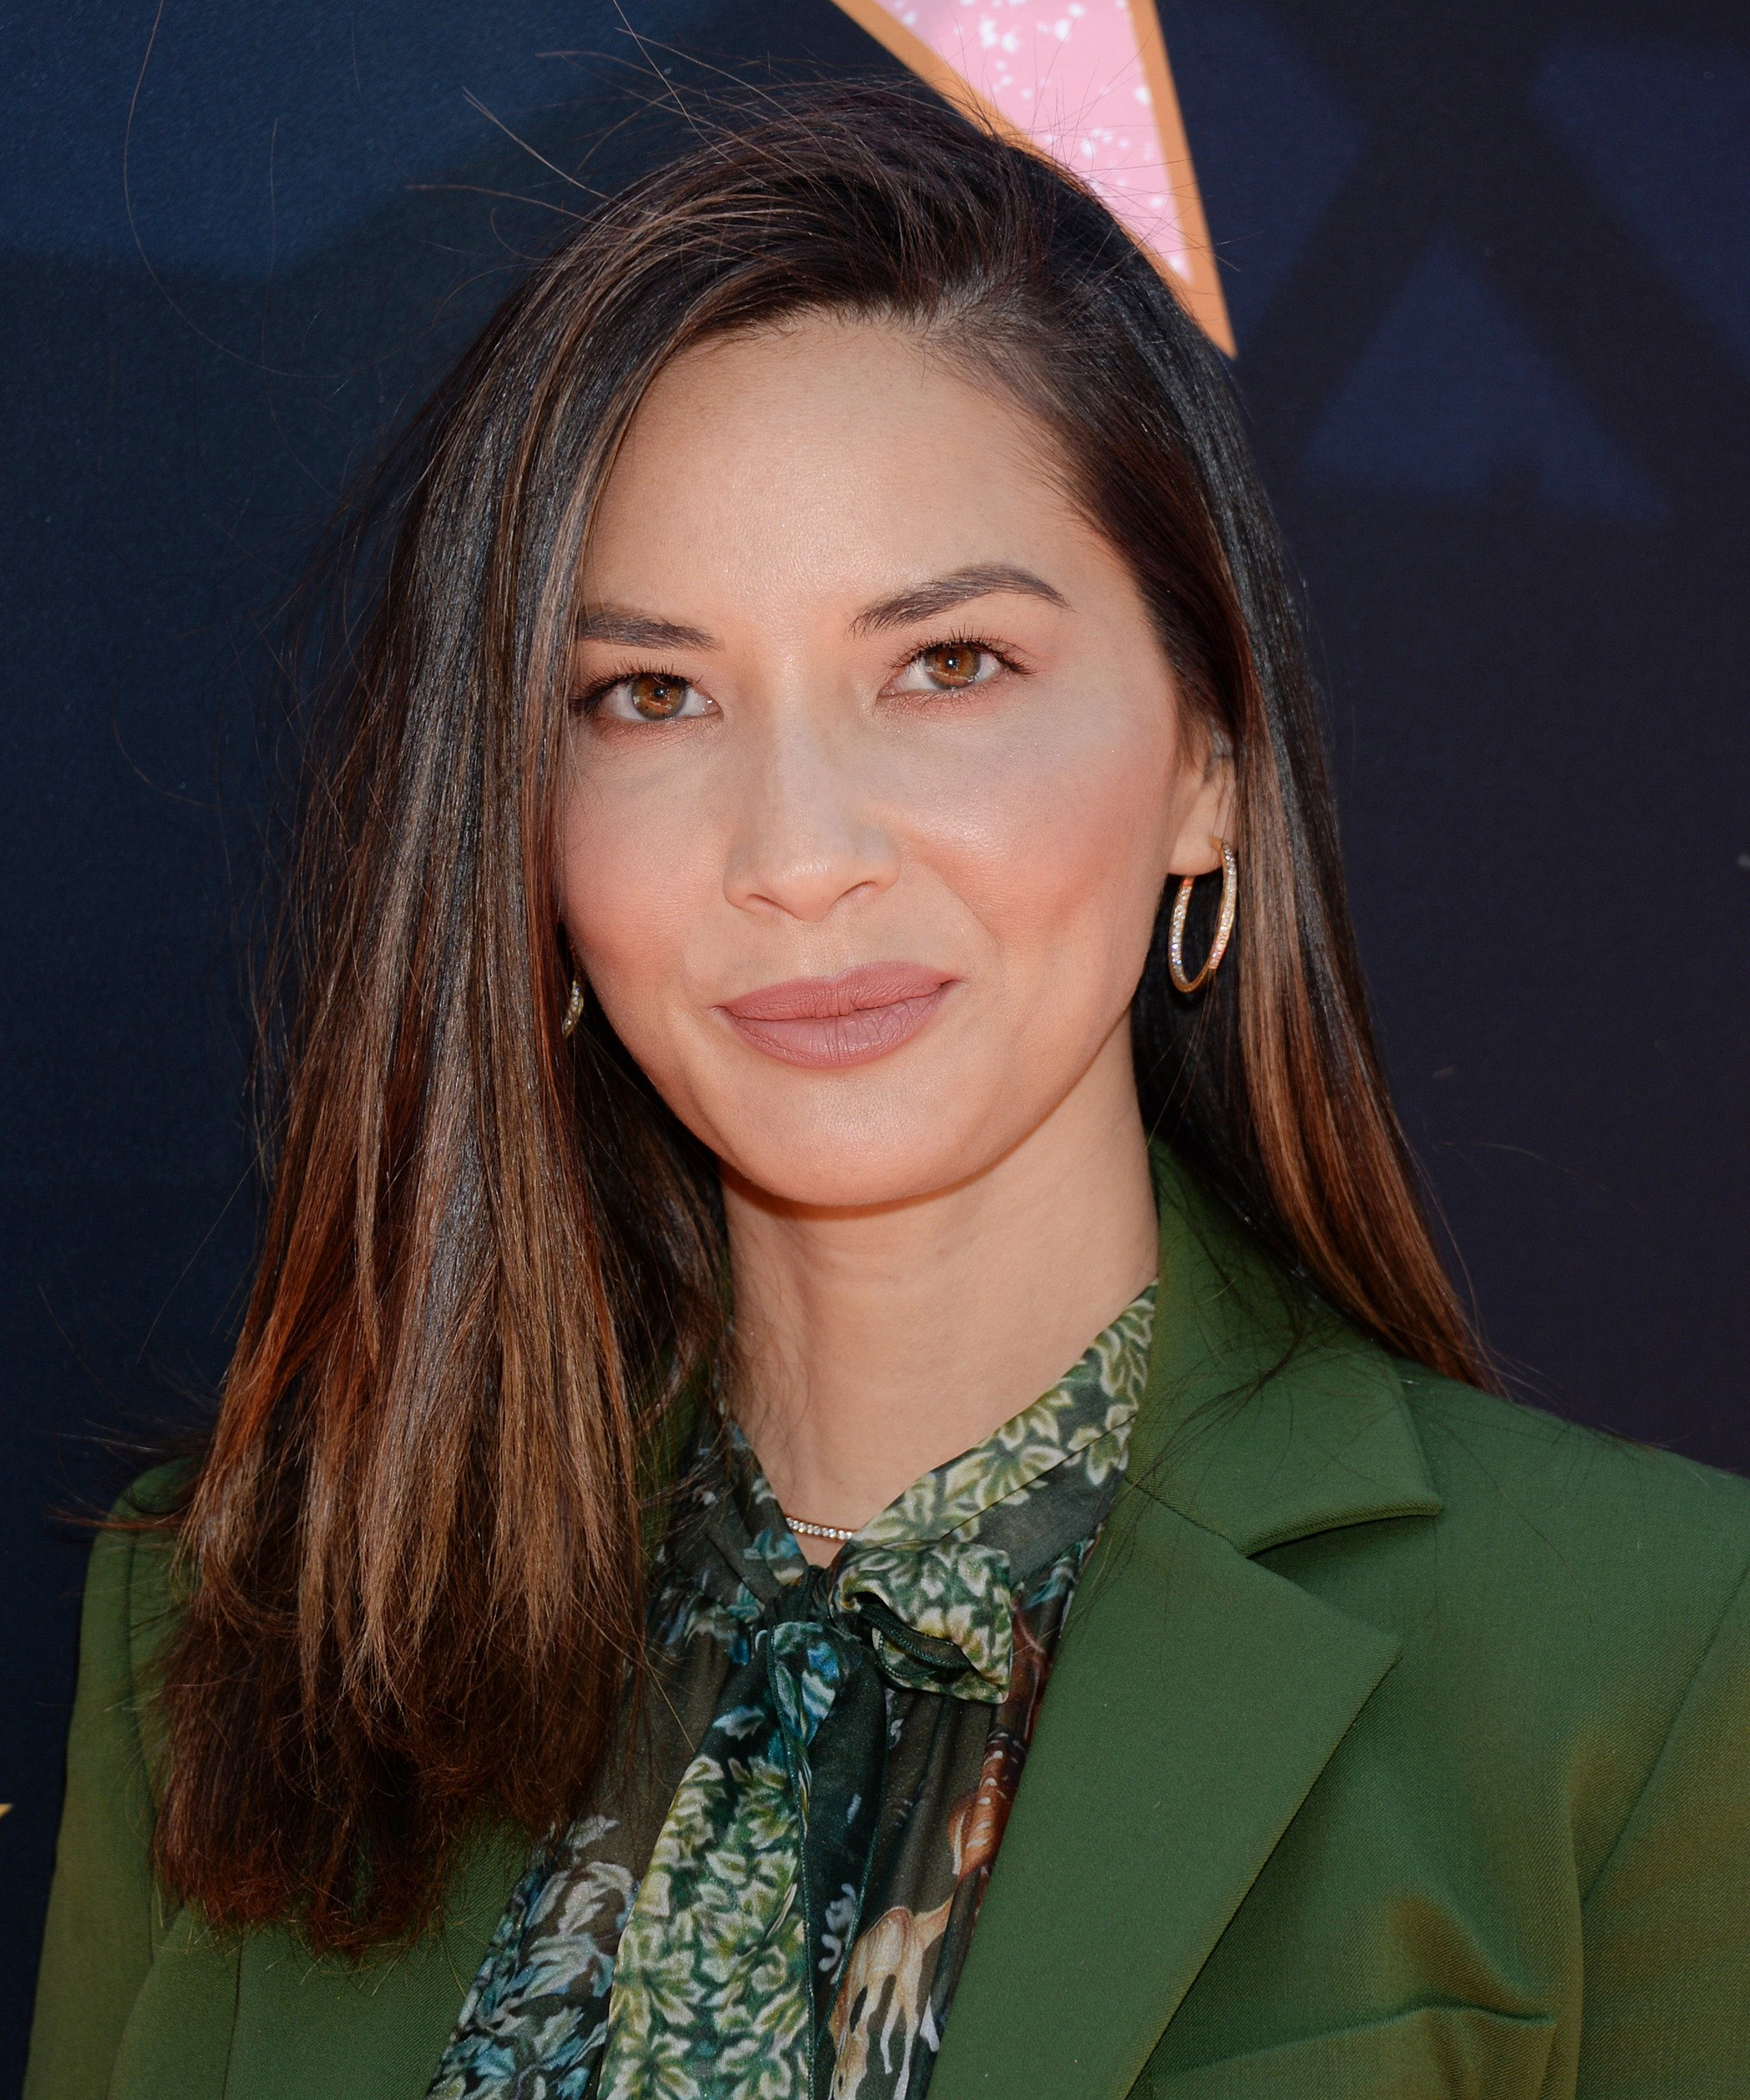 olivia munn with shoulder length straight chestnut brown hair with lowlights styled to one side with a side parting